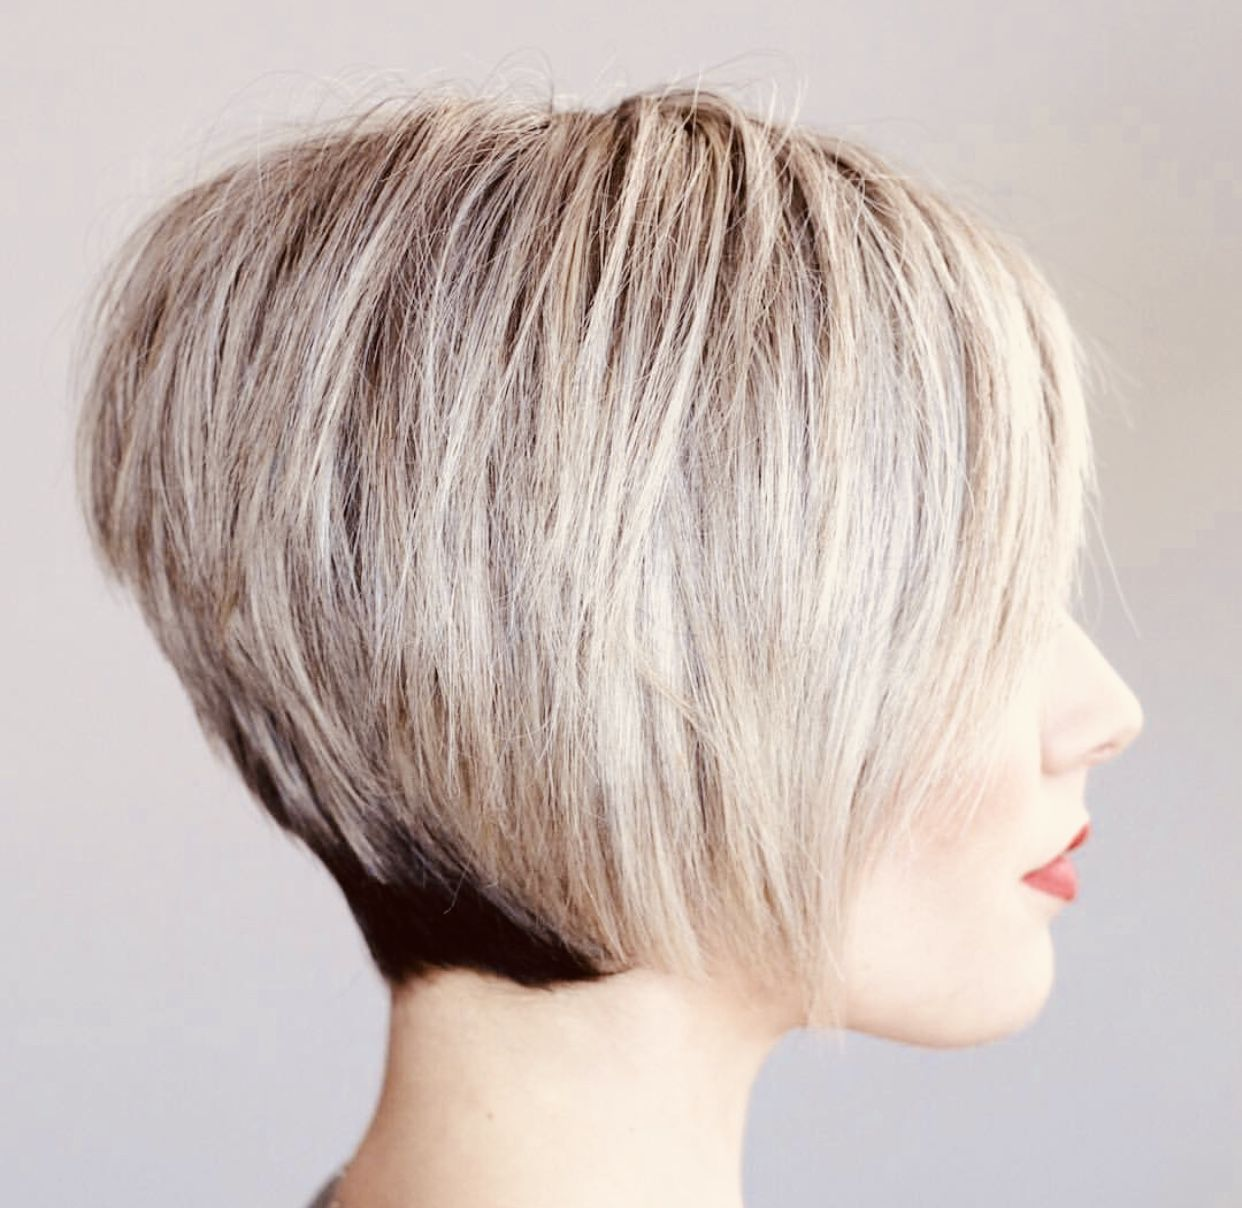 Pin by Nadia on Hair inspo  Pinterest  Hair Hair cuts and Hair inspo